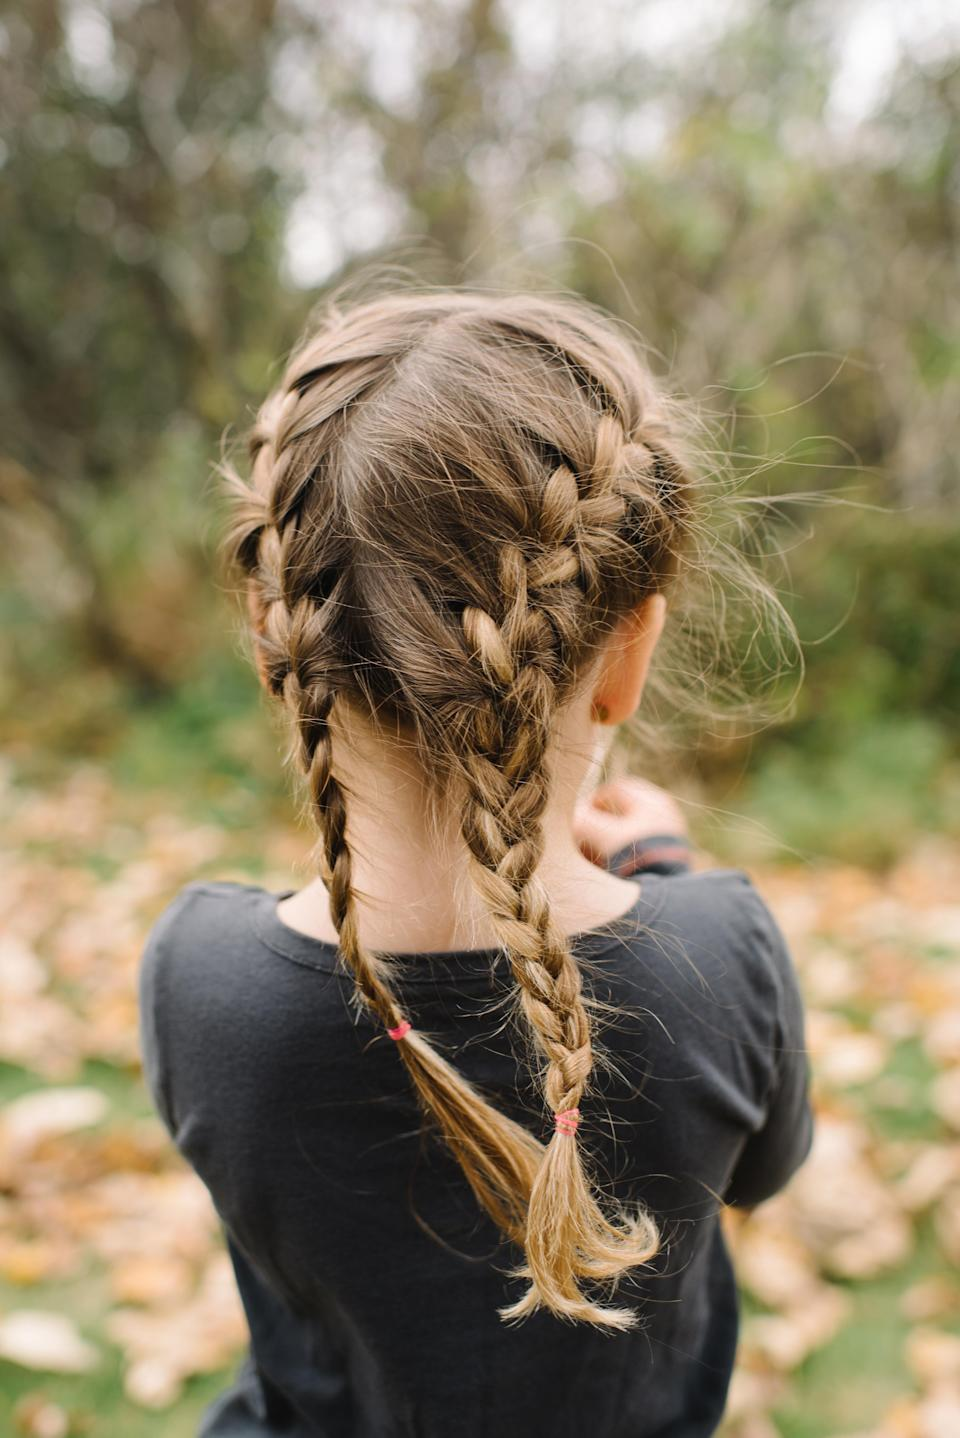 File photo of a girl with braids. (Photo: Shutterstock)